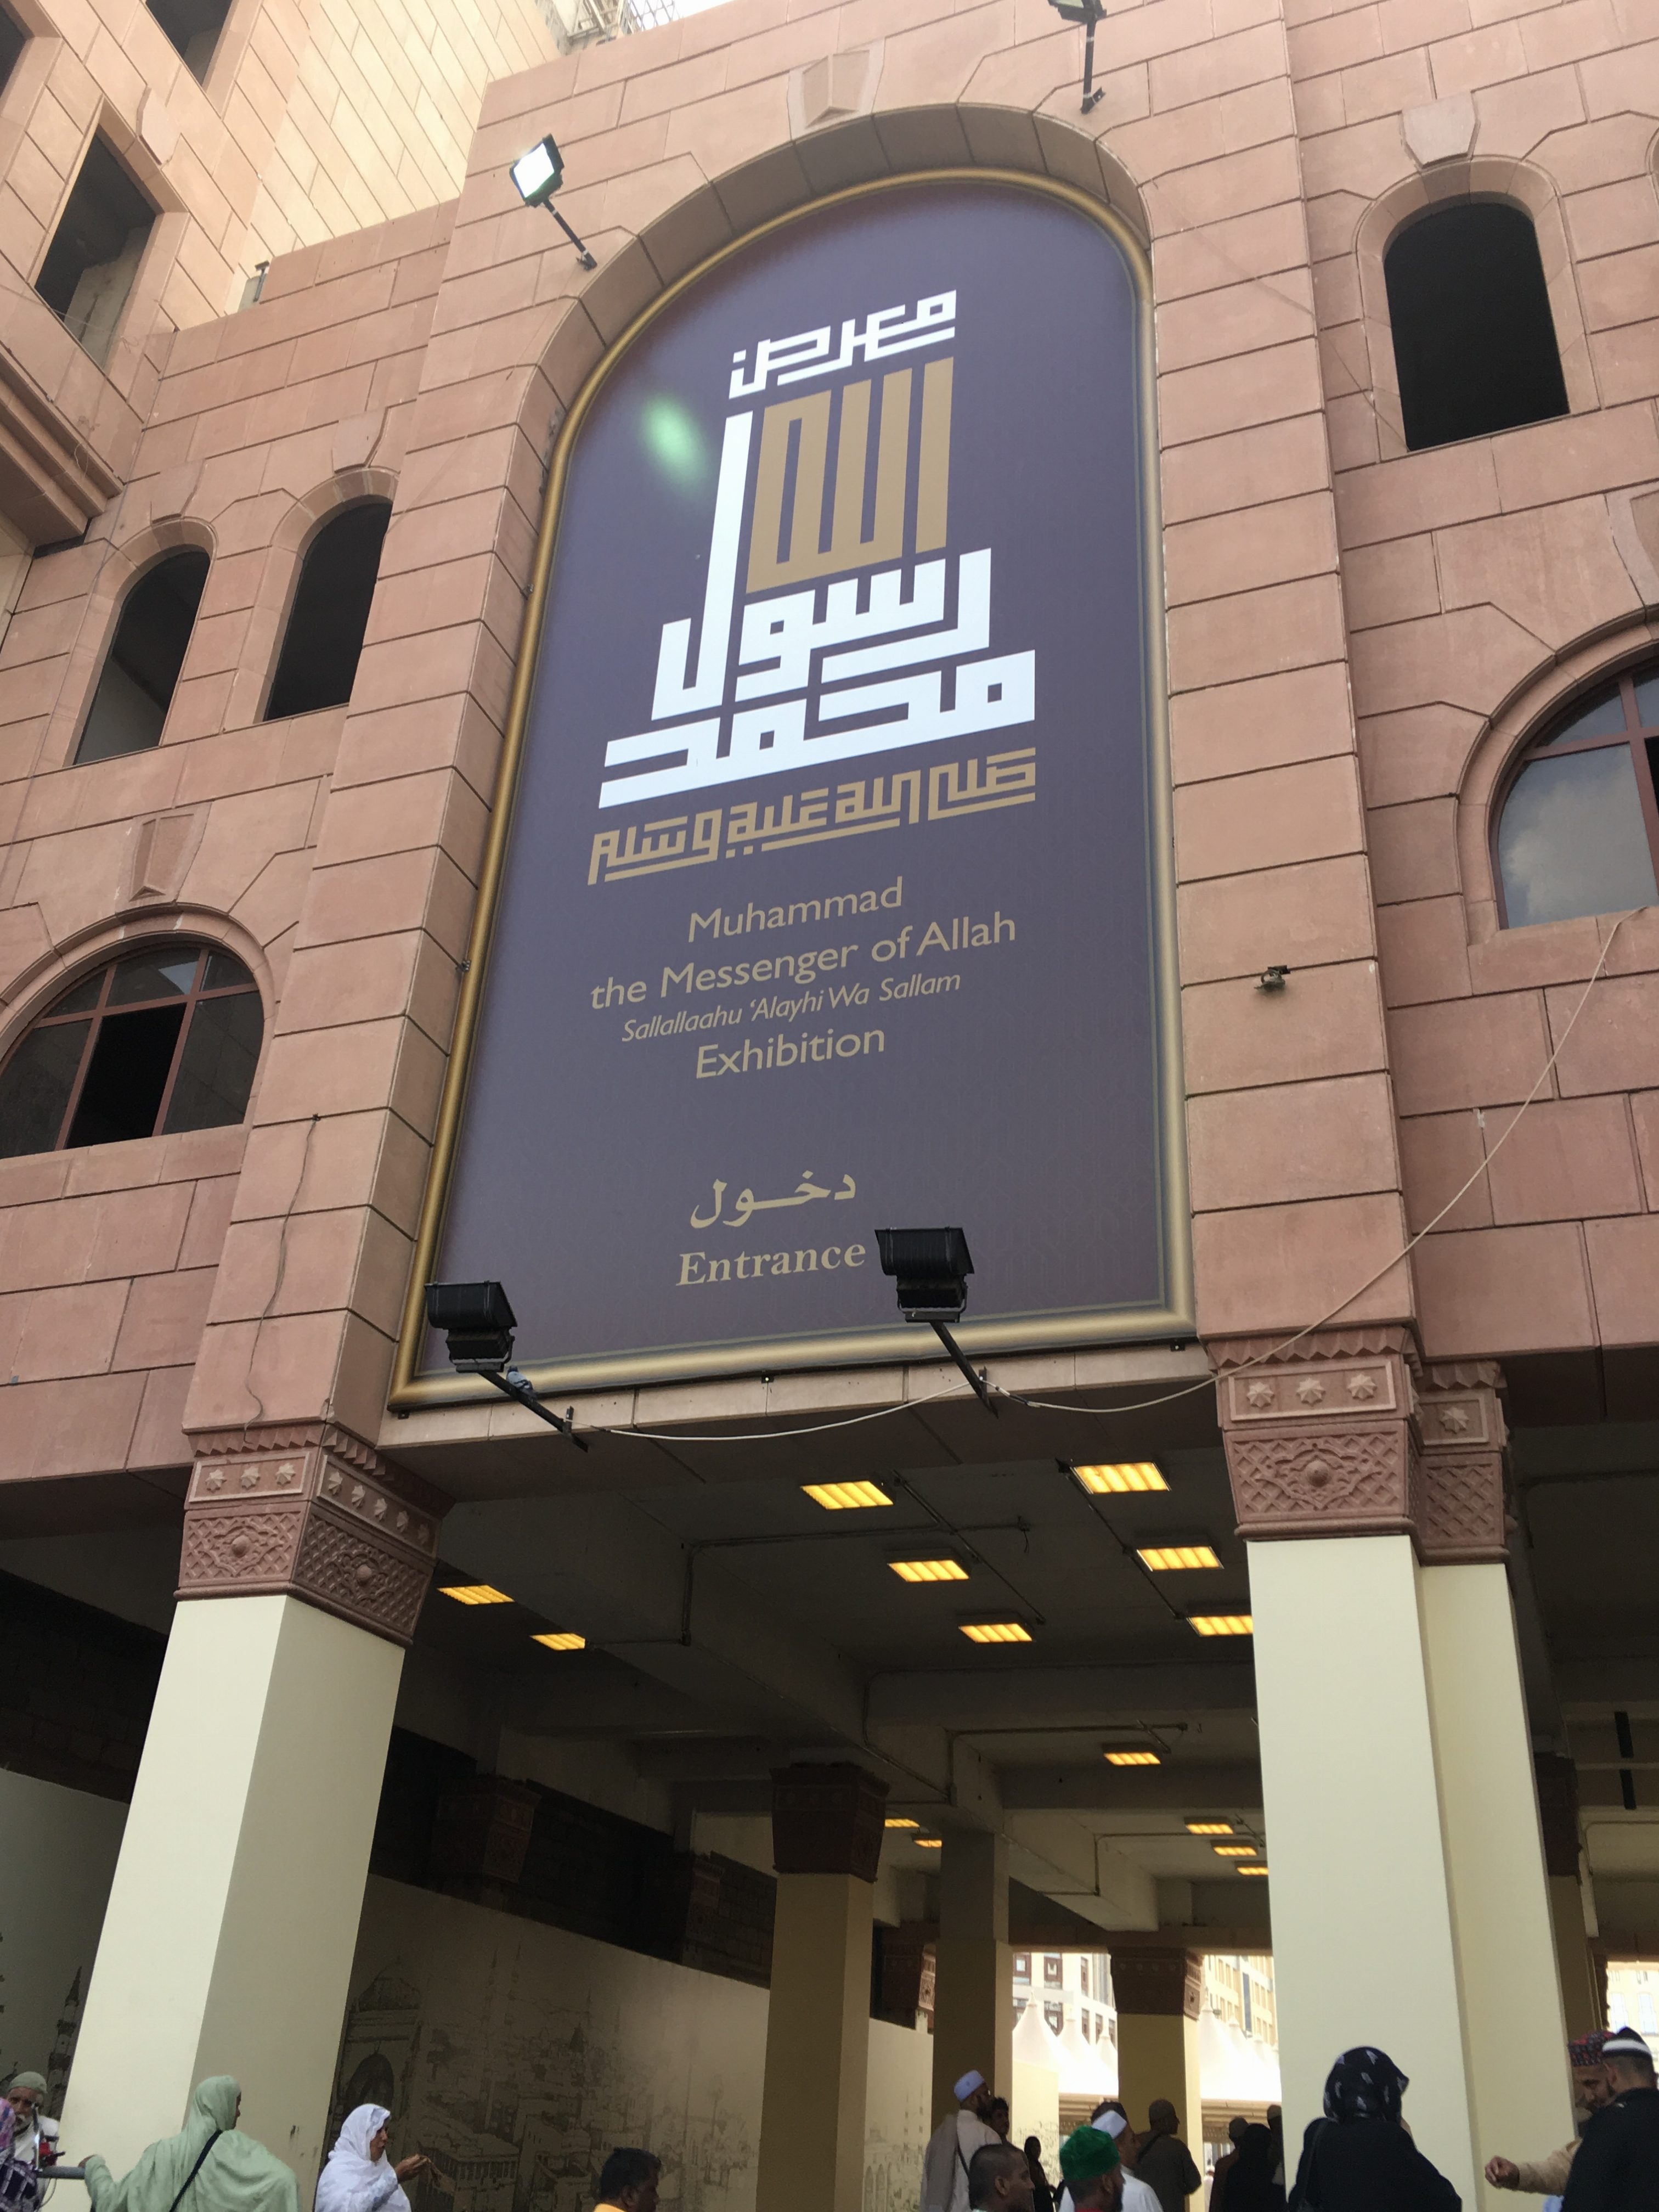 Muhammad (SWS), the Messenger of Allah Exhibition